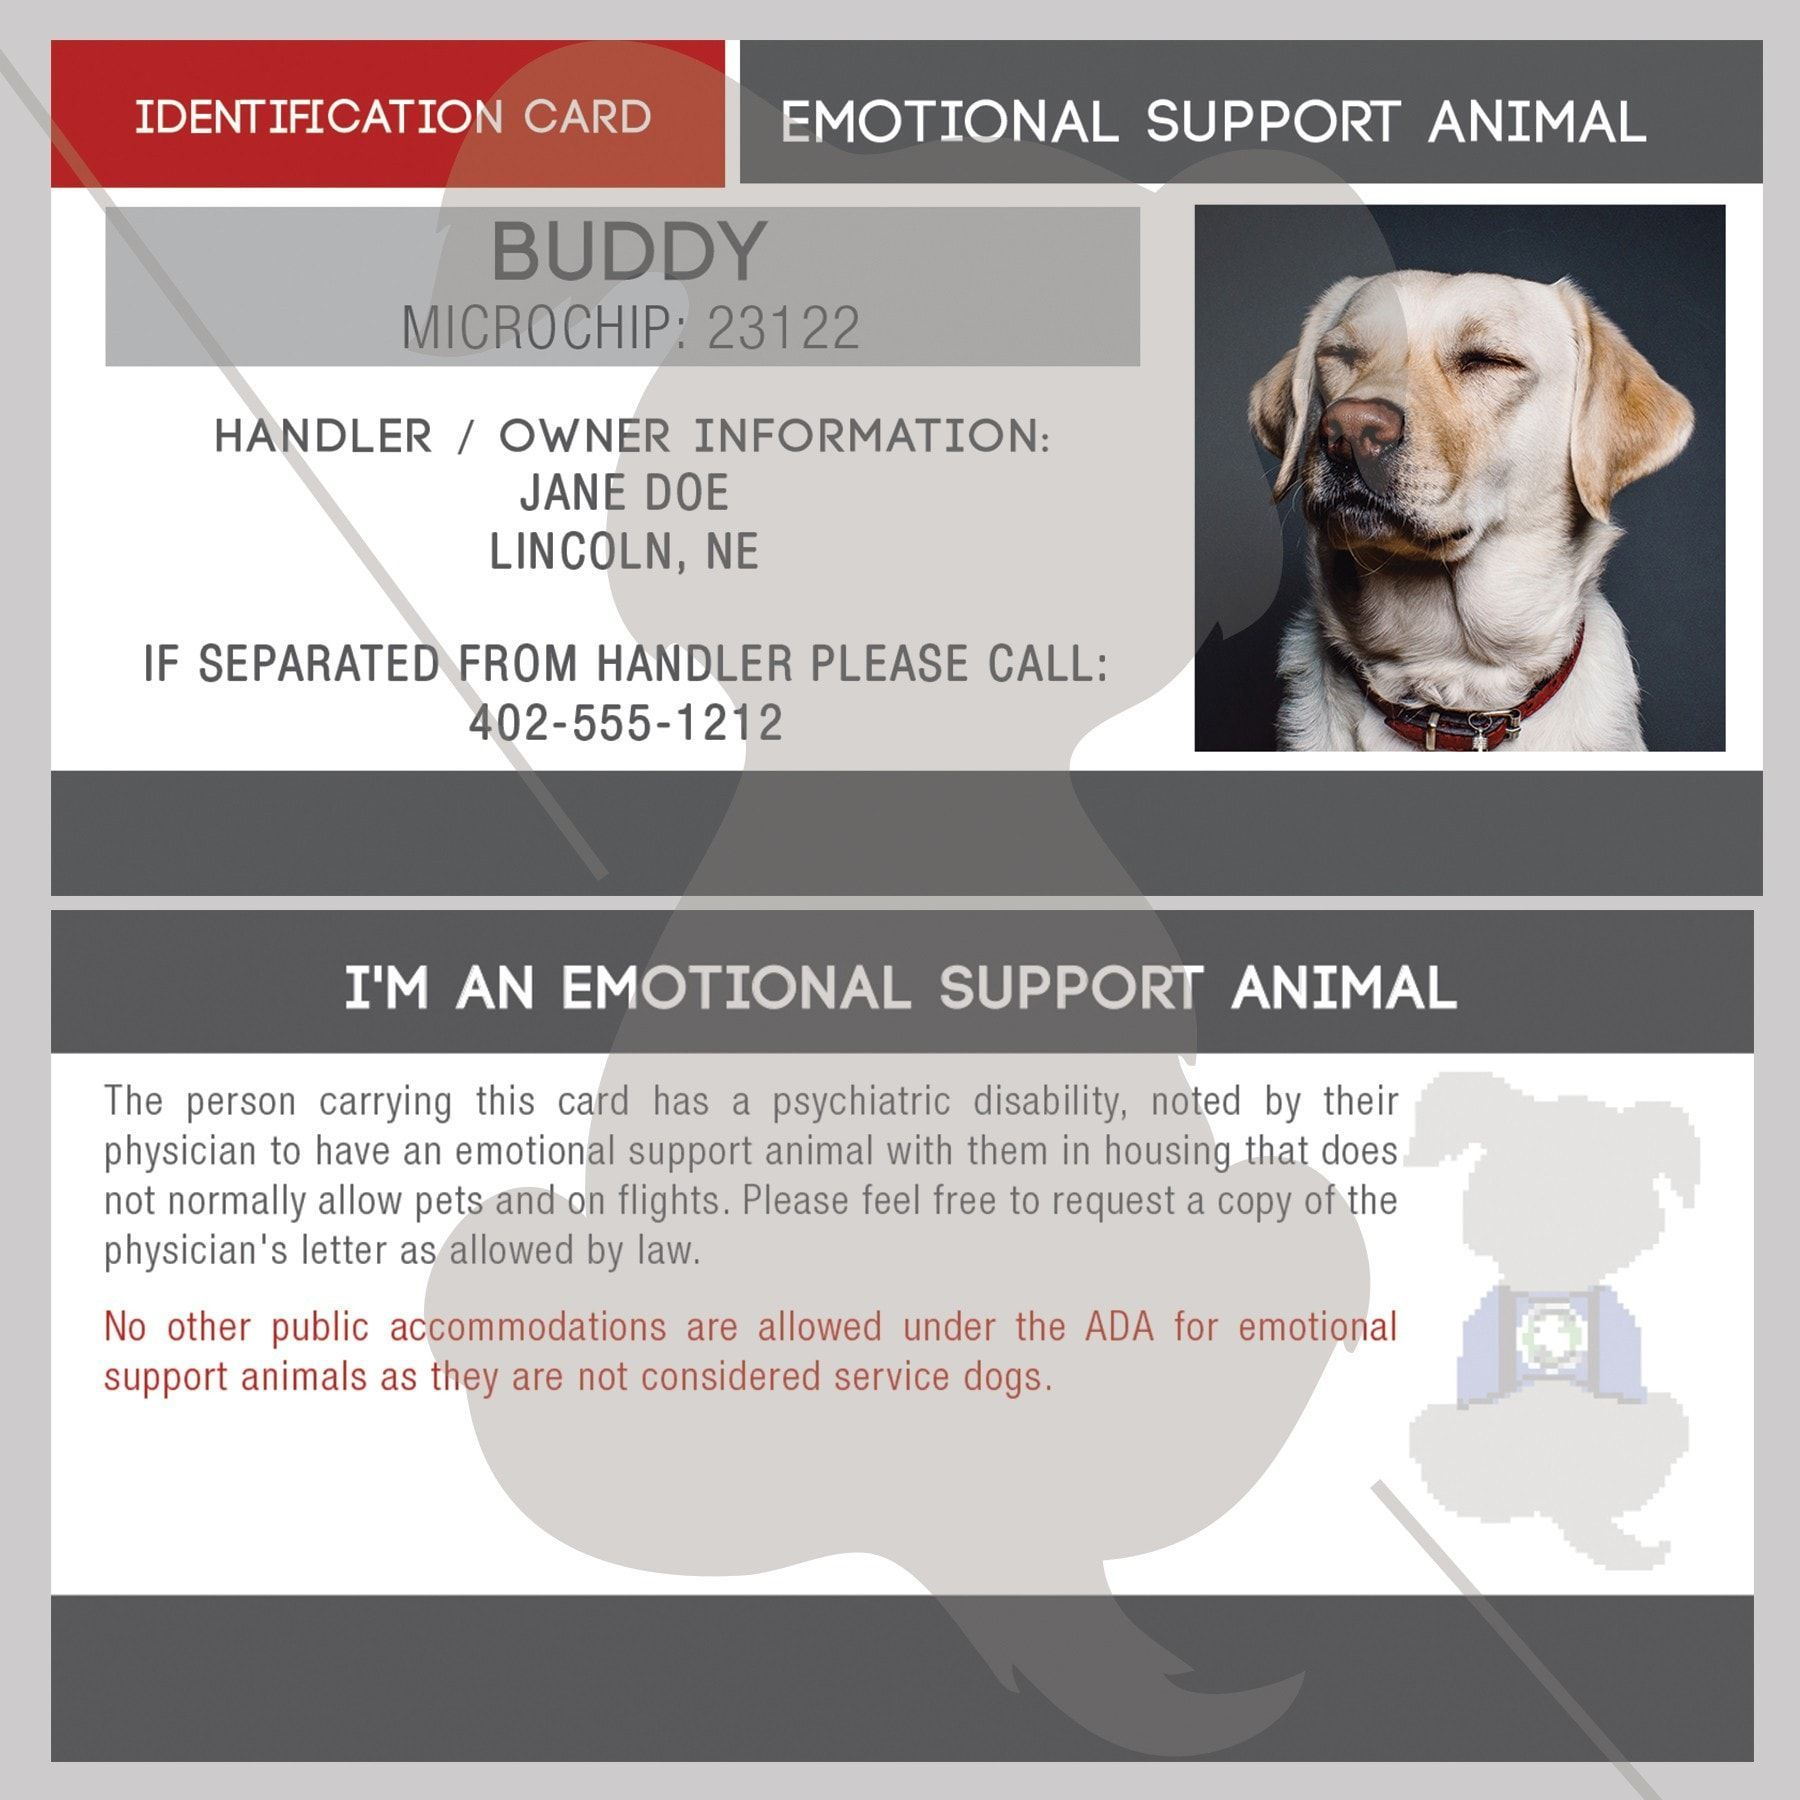 Id Card Emotional Support Animal Therapy Dogs Emotional